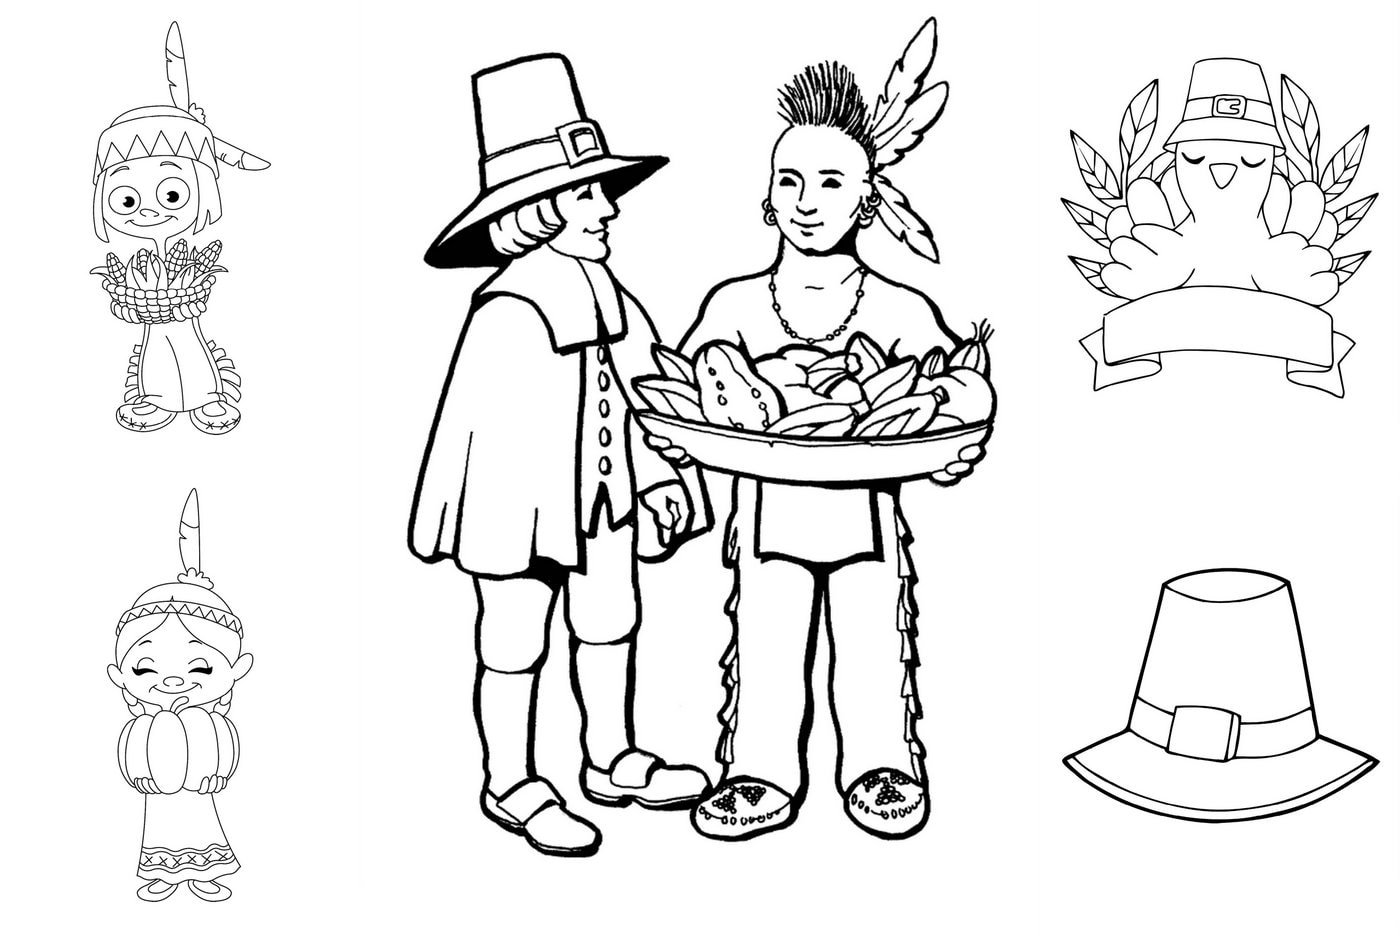 Native American Indian History Coloring Pages This American ... | 934x1400